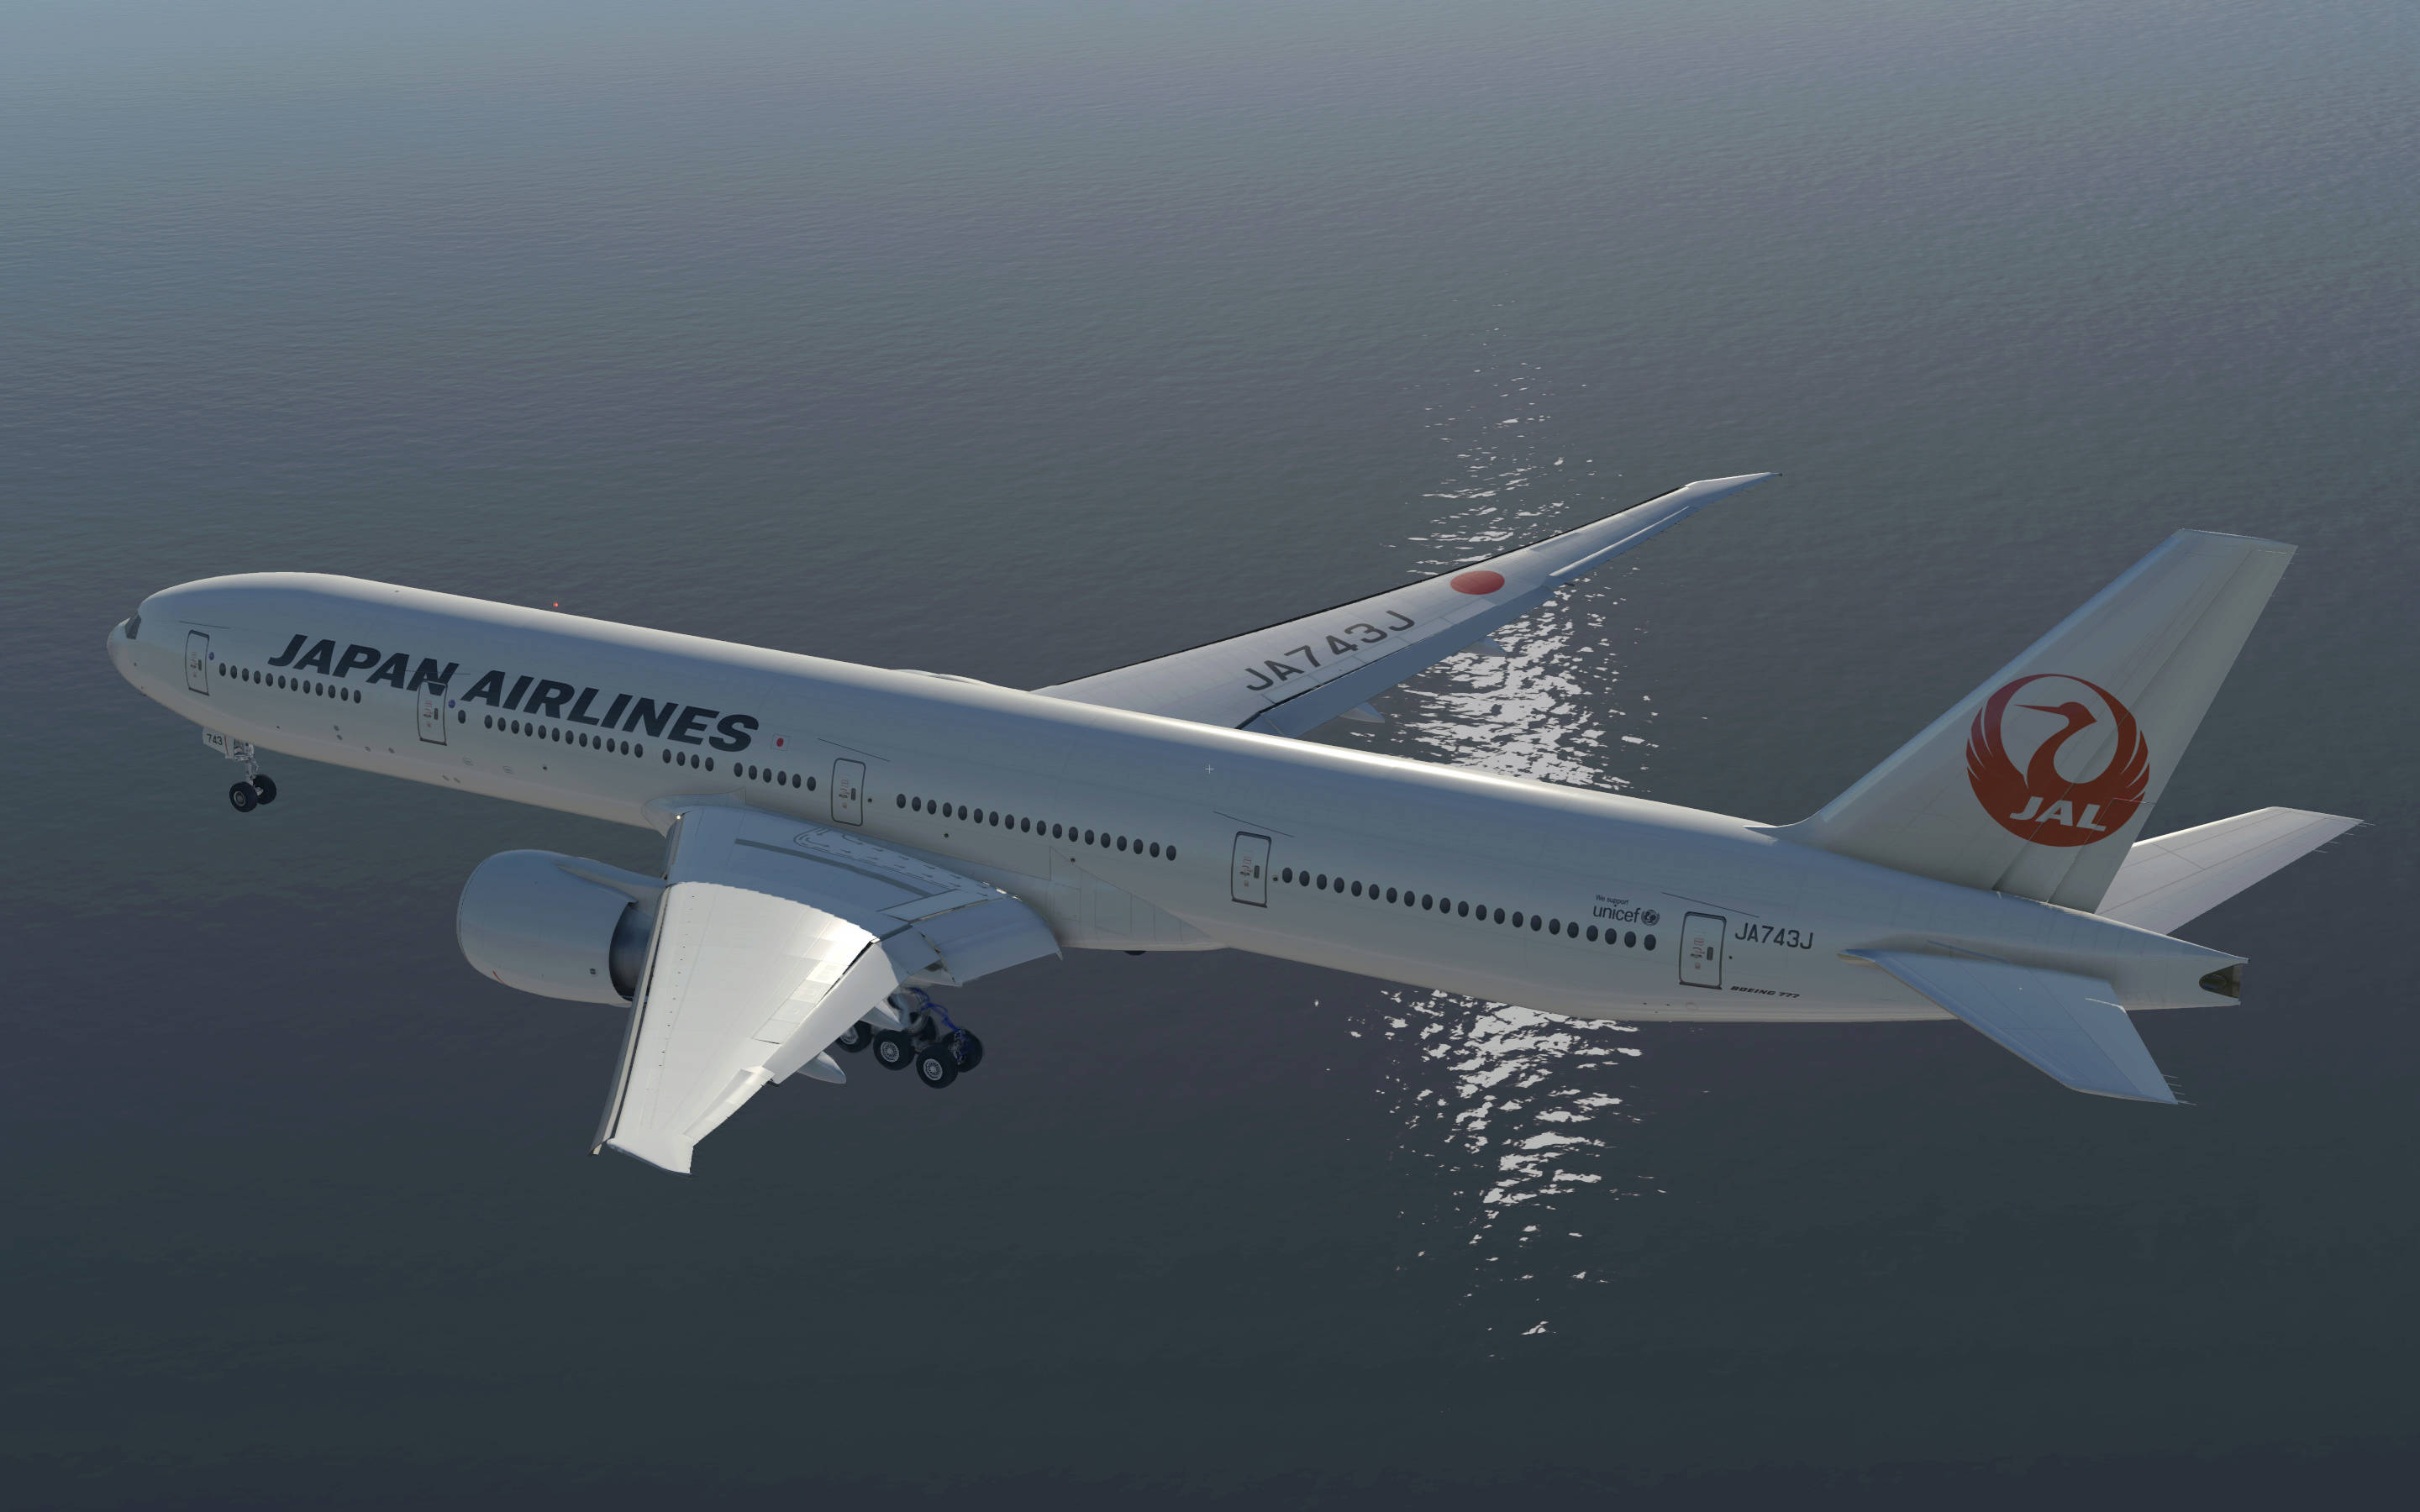 Project: Boeing 777 Series - Aircraft Development - X-Pilot